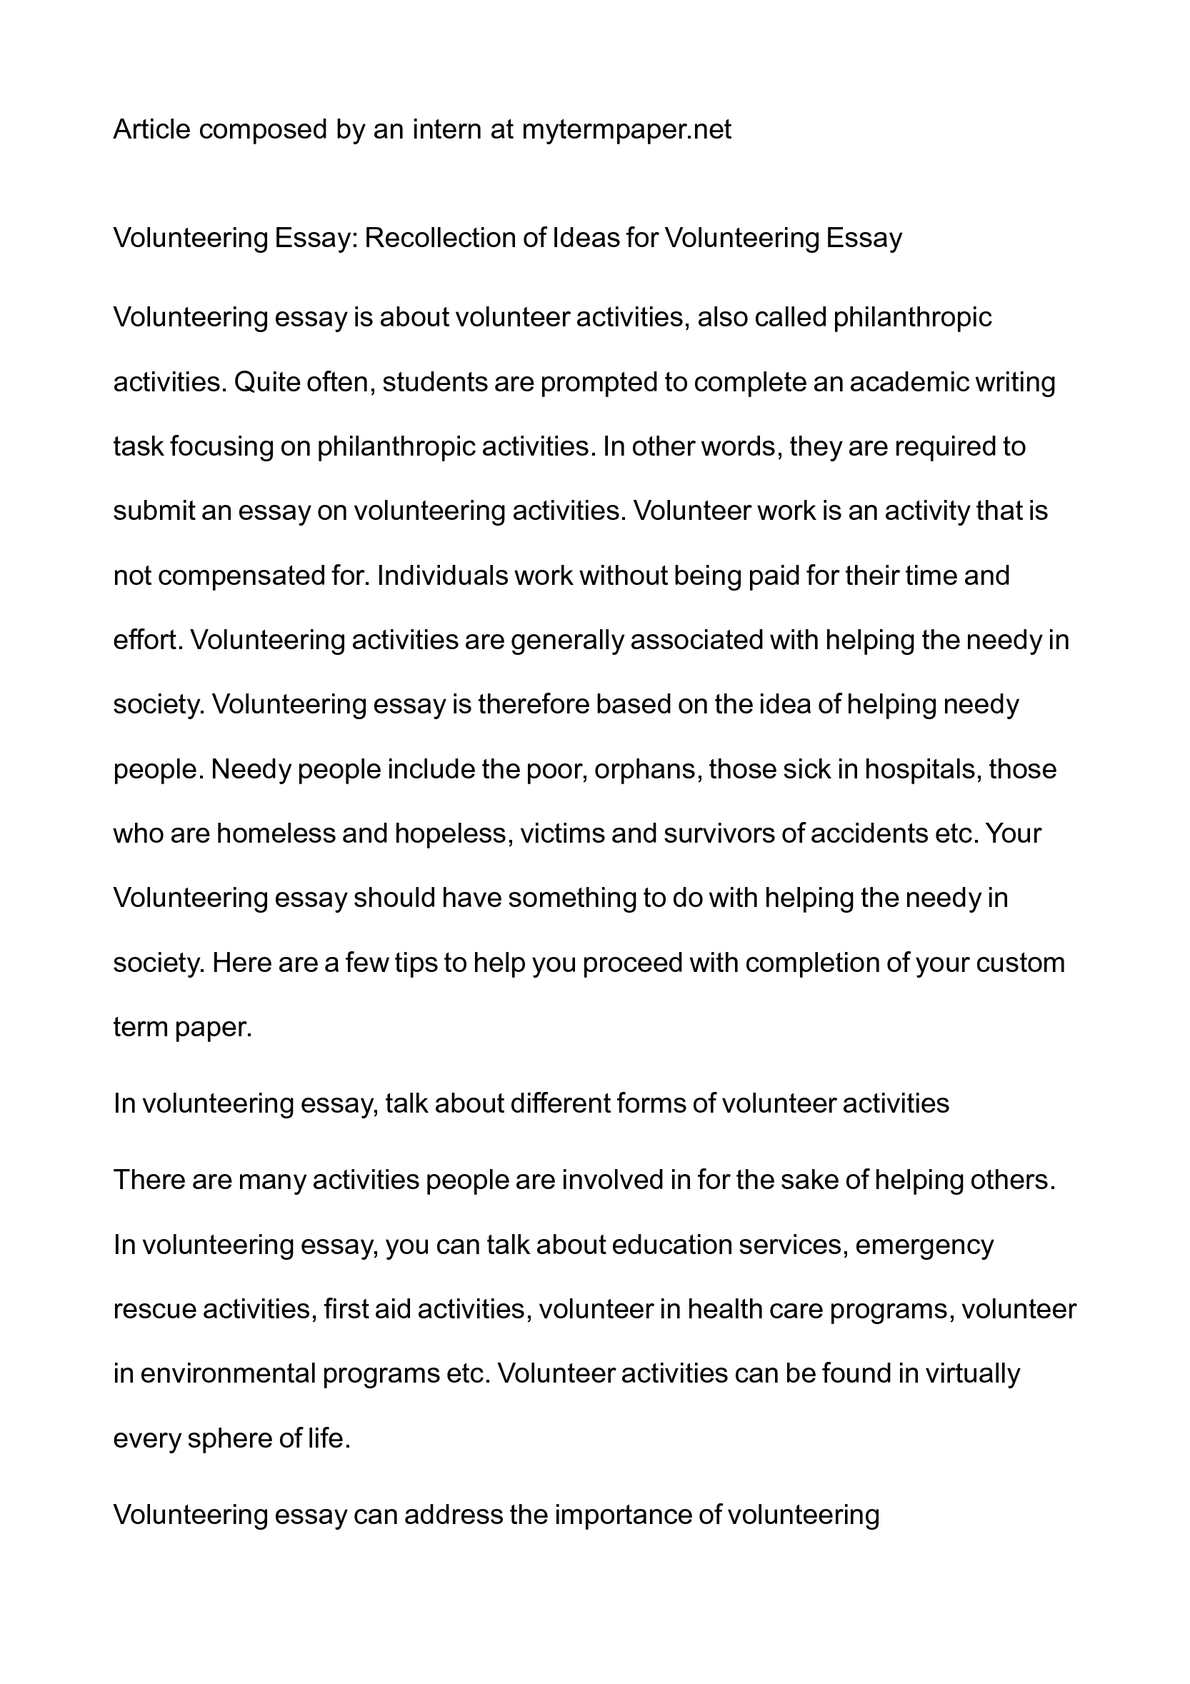 volunteering essay recollection of ideas for  volunteering essay recollection of ideas for volunteering essay